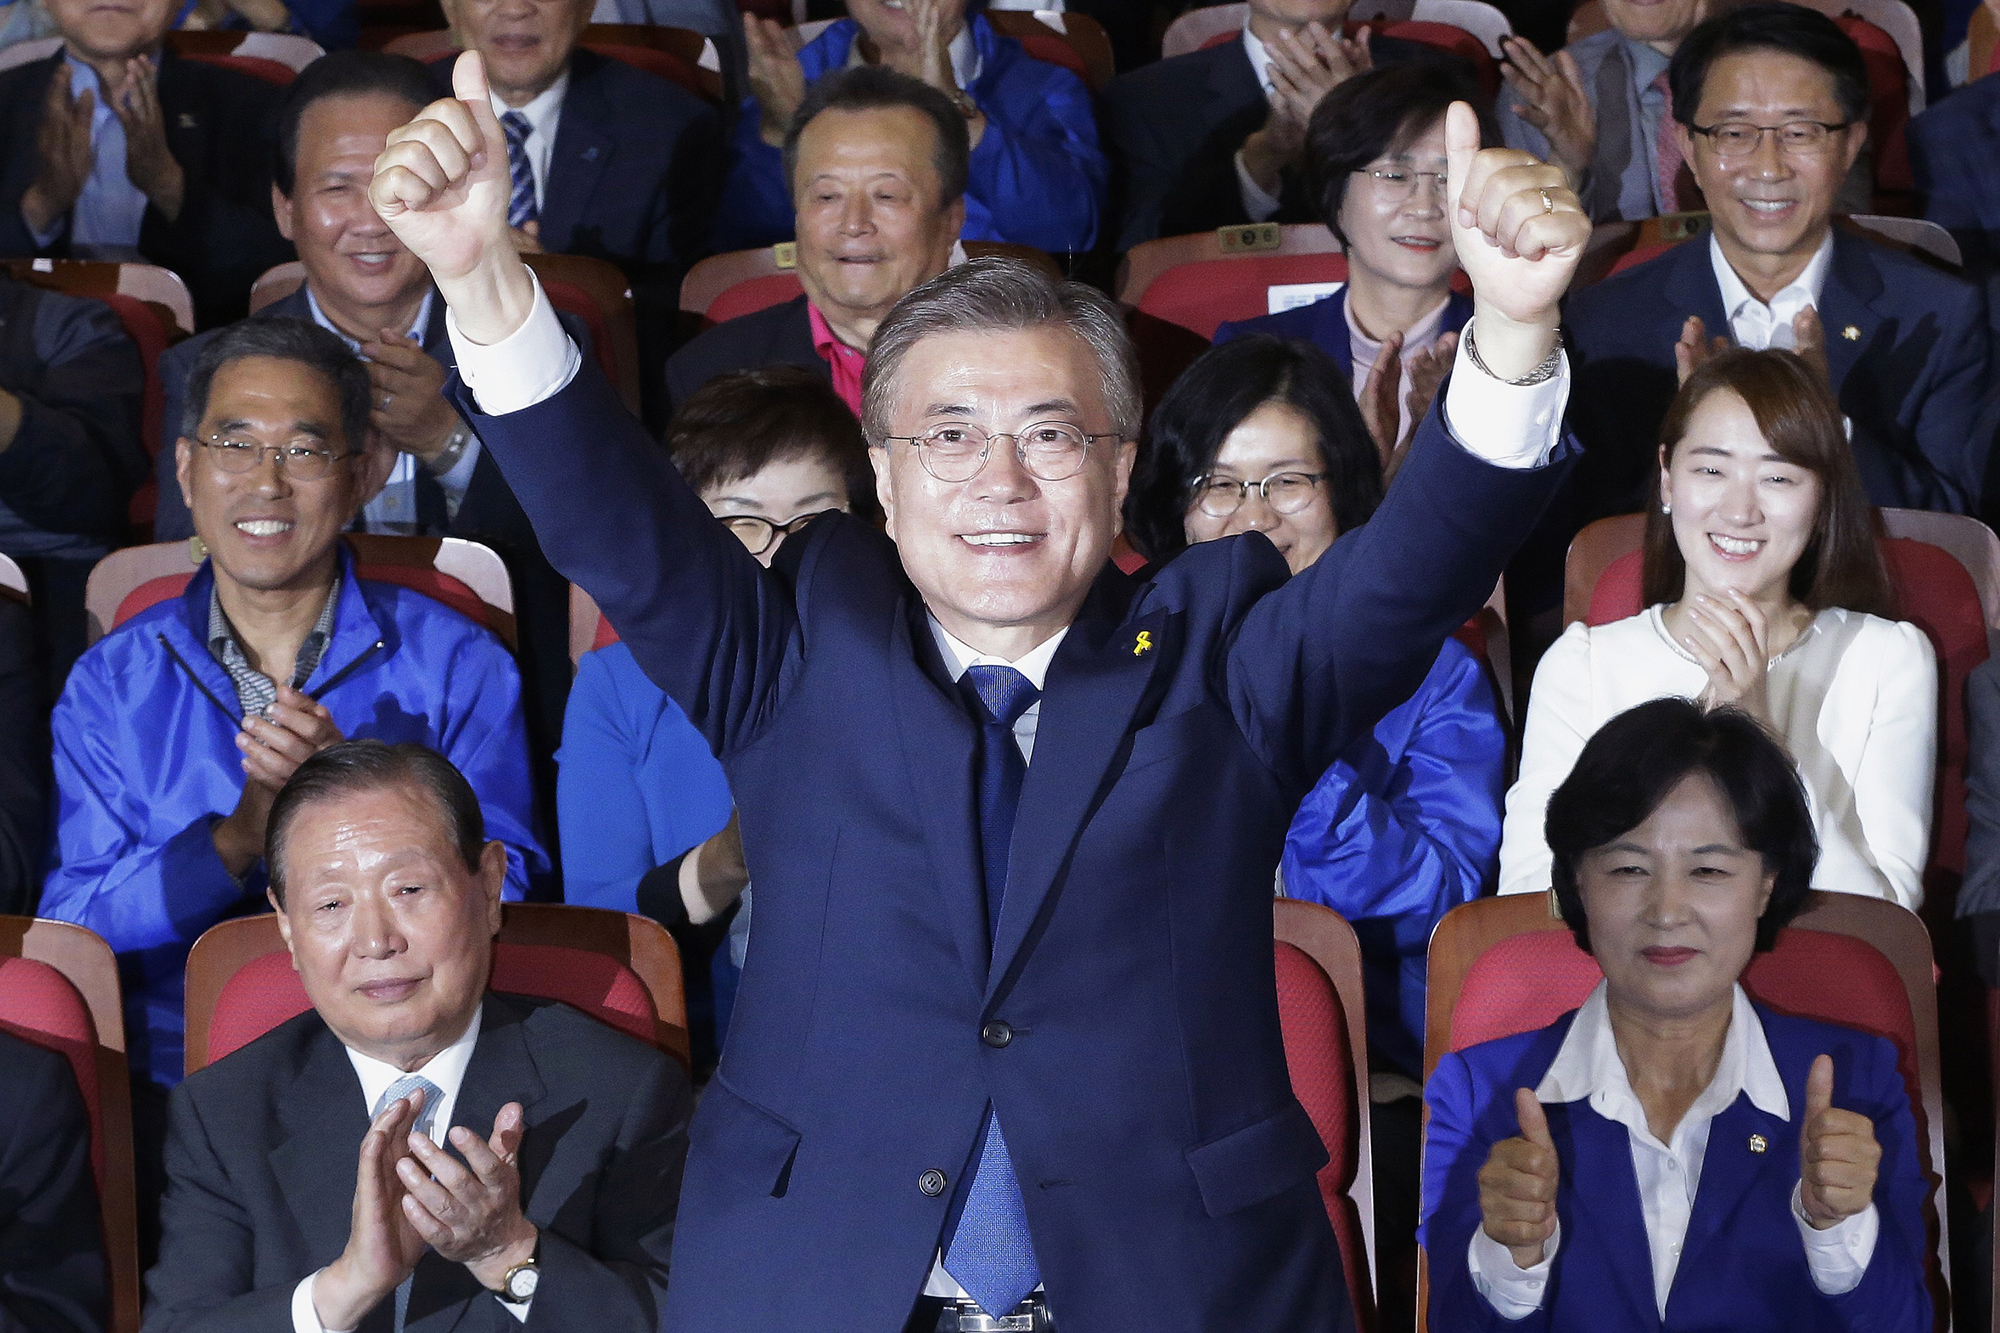 Moon Jae-in raises his hands as his party leaders and members watch local media's results of exit polls for the presidential election in Seoul, South Korea,on May 9, 2017.